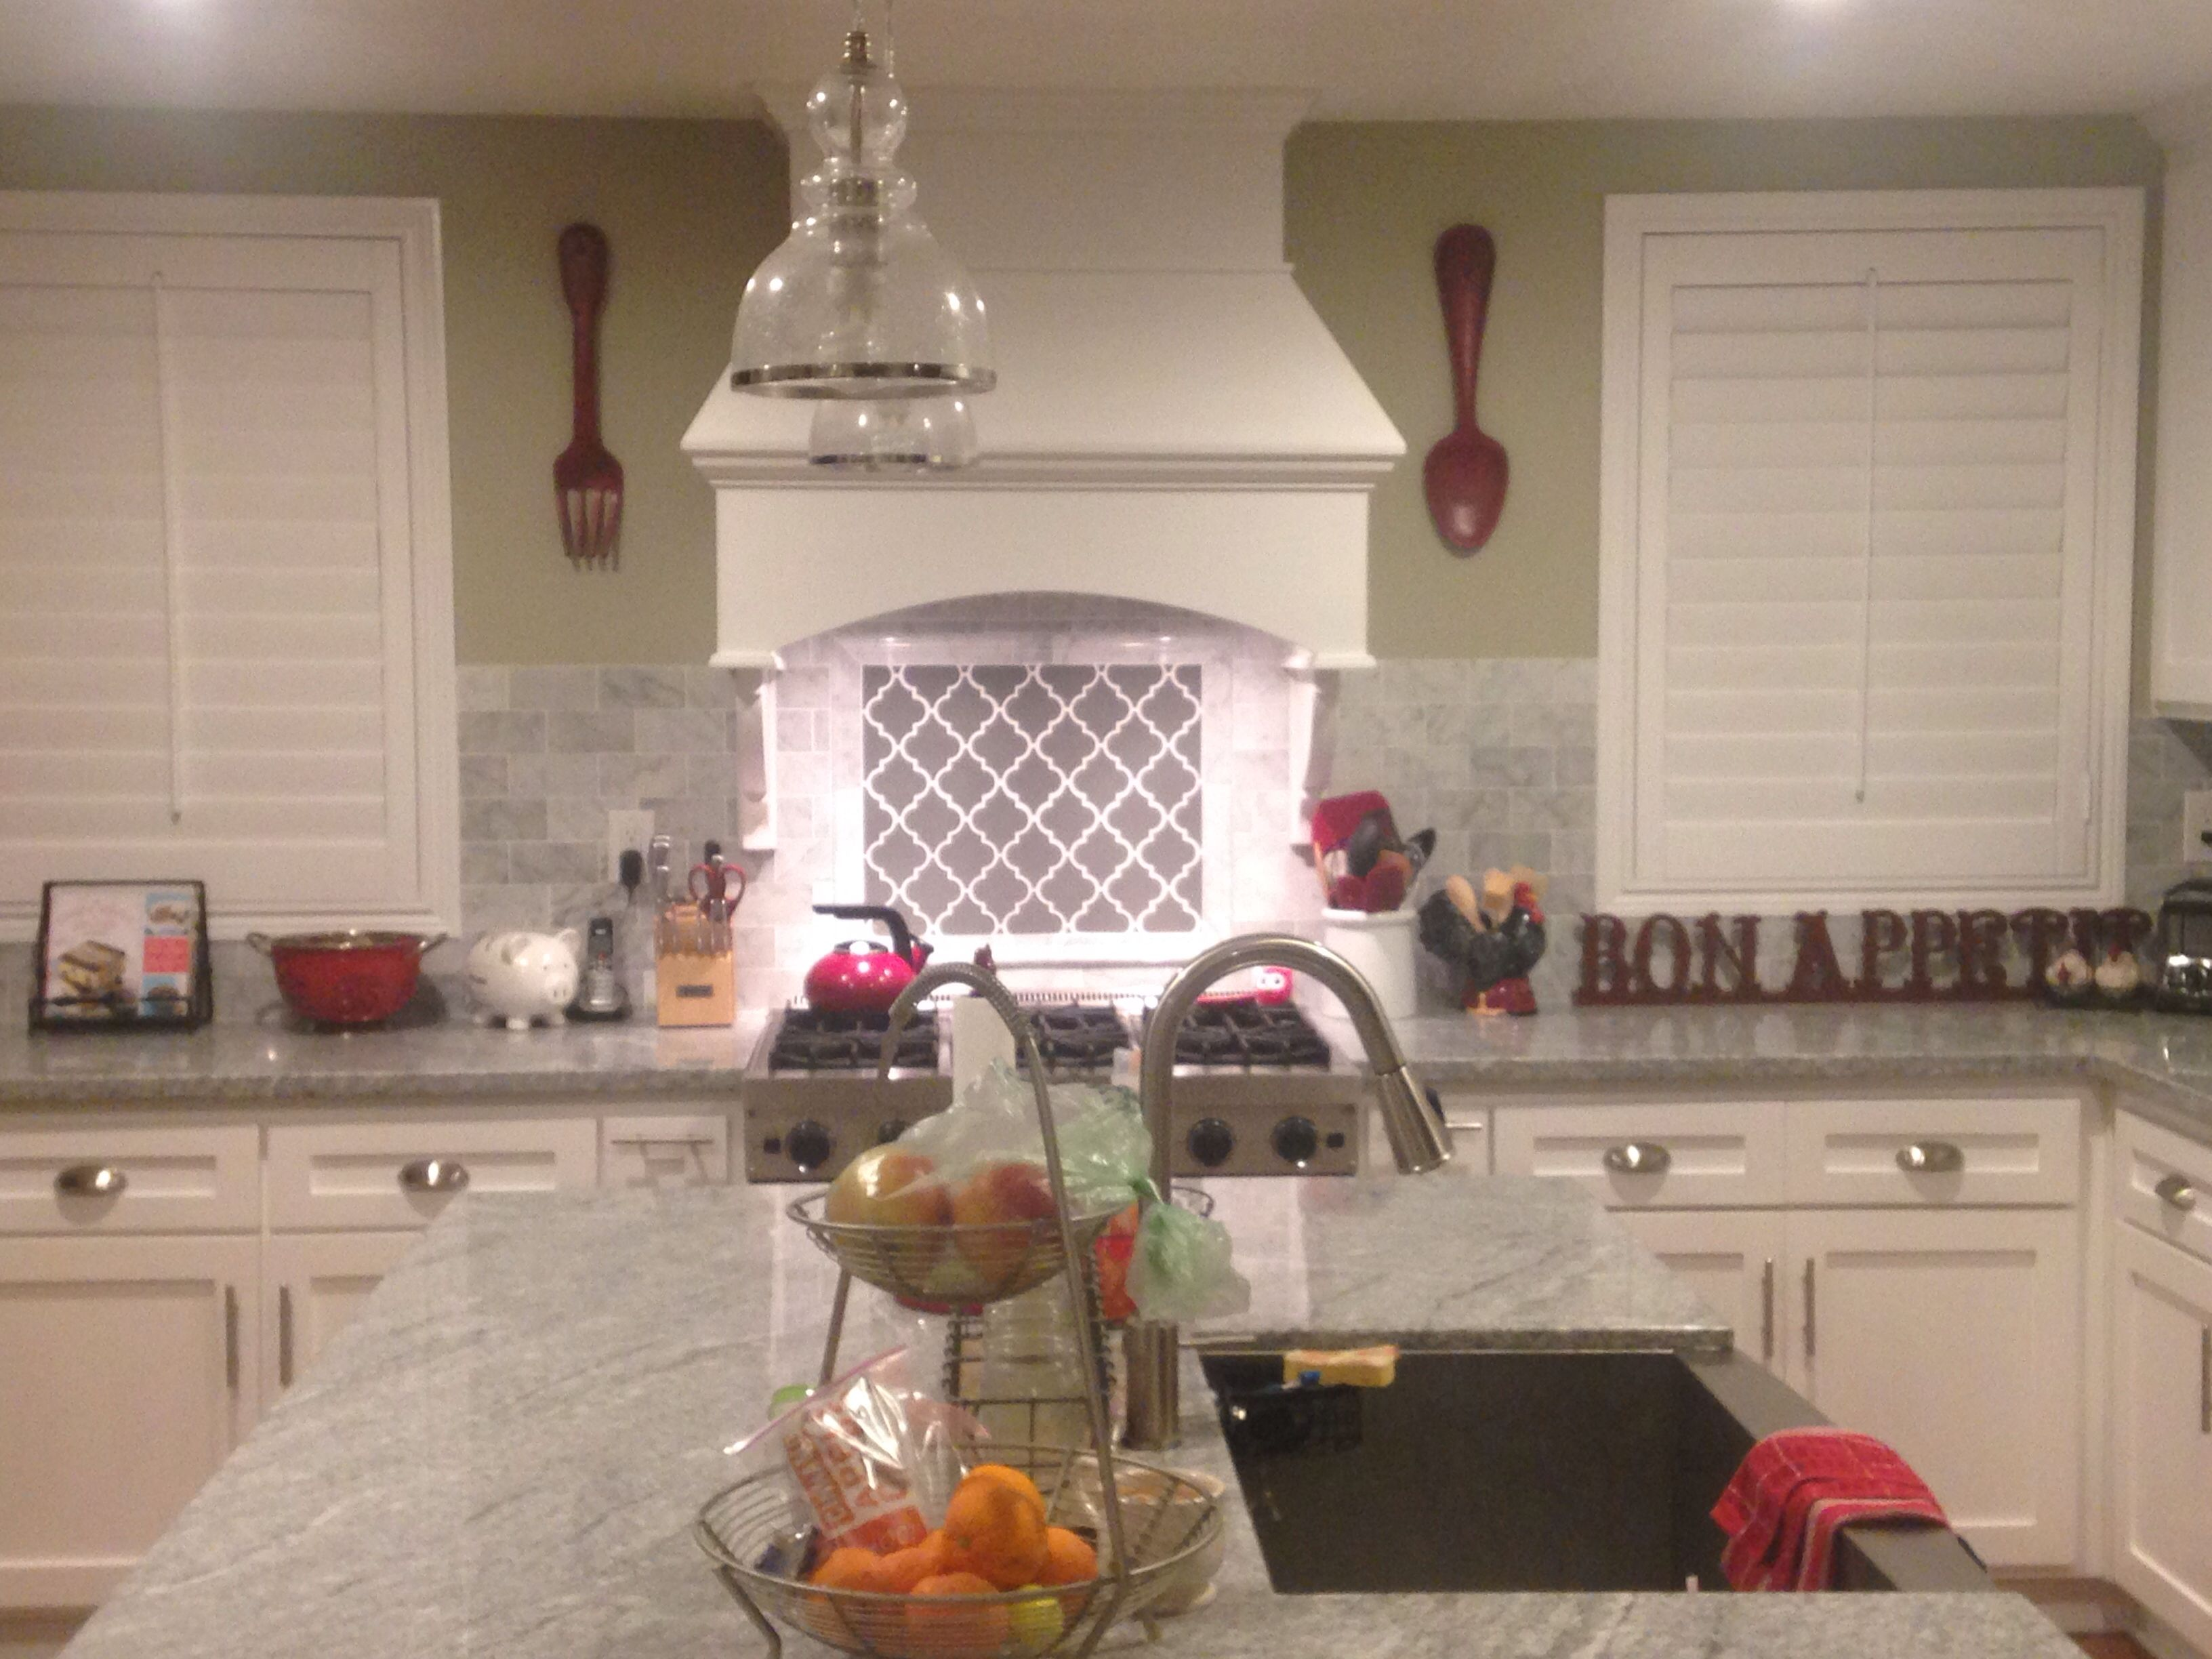 New white kitchen carrera bianco subway tile backsplash viscount carrera bianco subway tile backsplash viscount white granite shaker style cabinets and new red spoon and fork over range hood need to paint walls grey dailygadgetfo Image collections